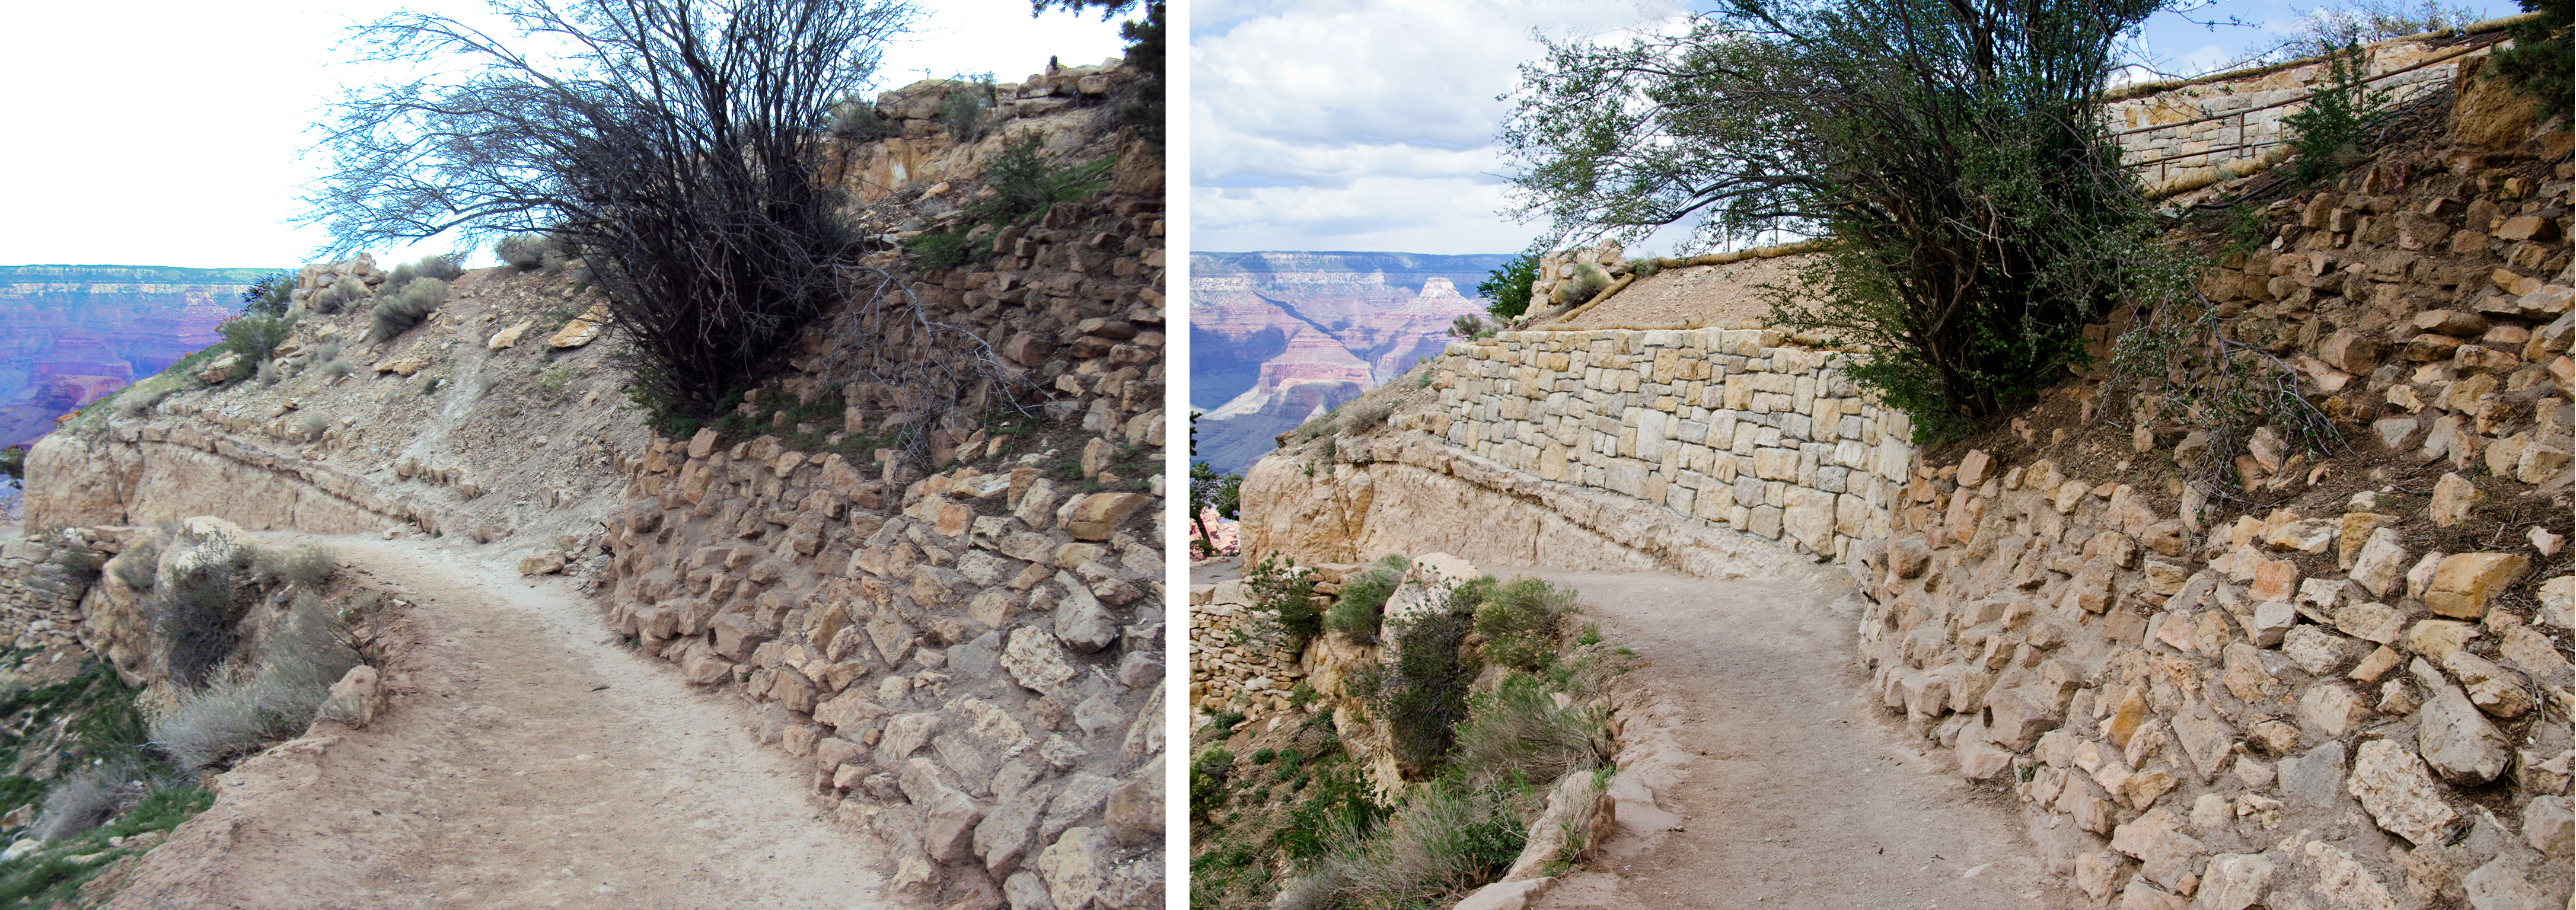 Grand Canyon N.P, Bright Angel Trailhead Renovation - Retaining Wall. - Flickr - Grand Canyon NPS.jpg Before and after photos showing the recently